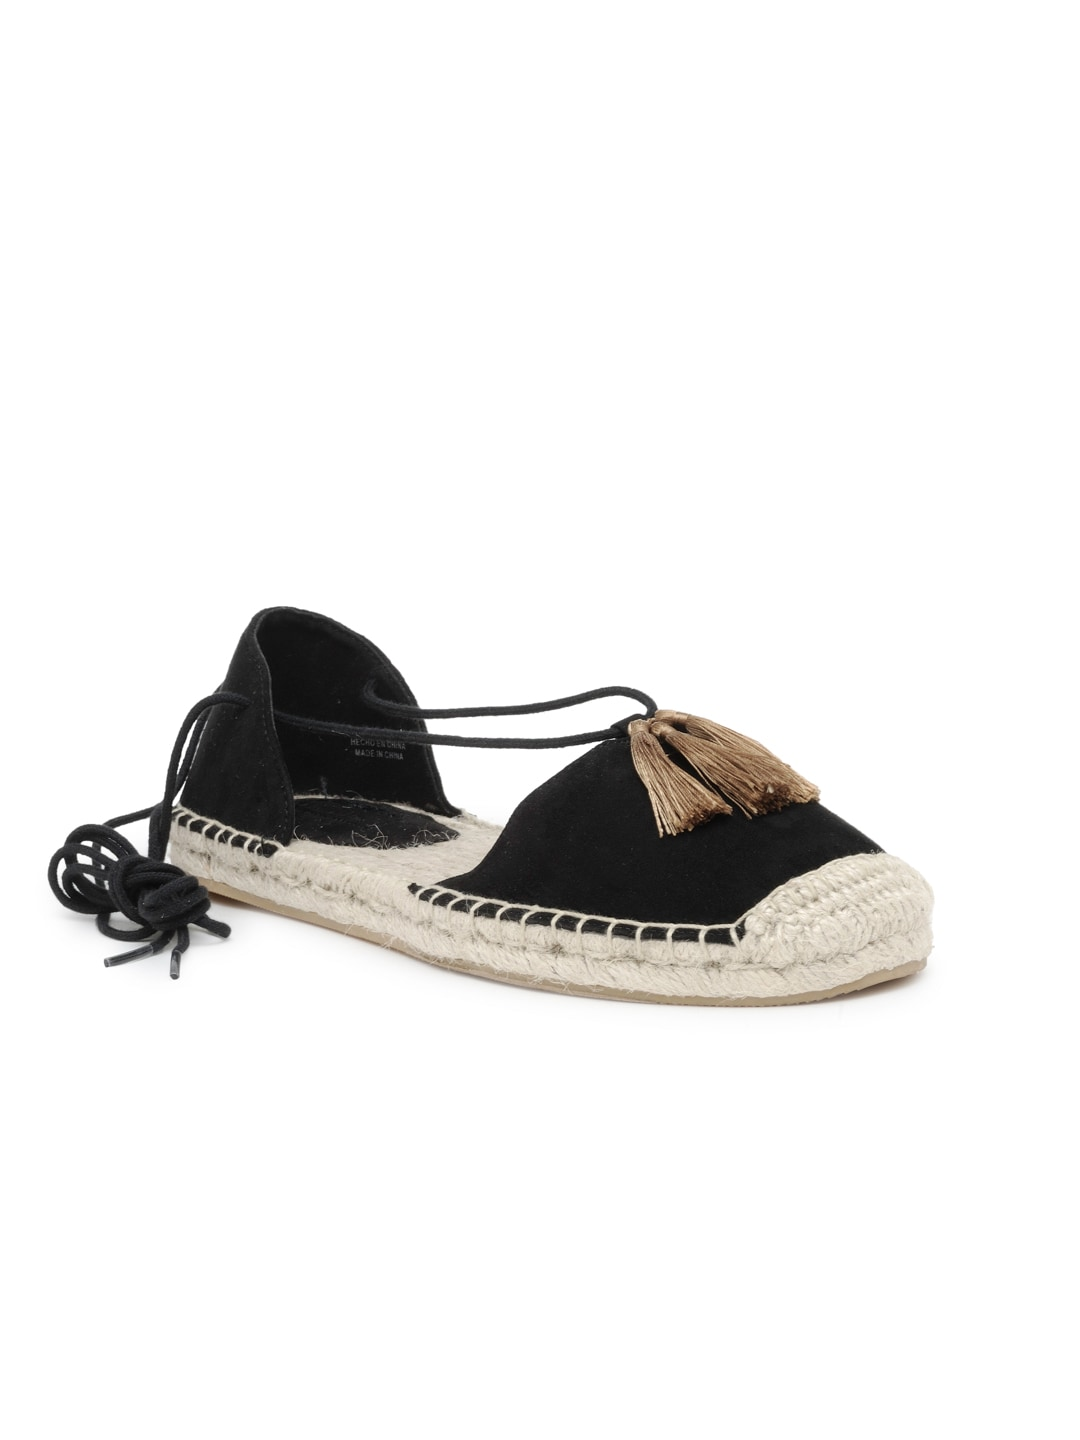 f5a58bd8fba3 FOREVER 21 Shoes - Buy FOREVER 21 Shoes Online in India